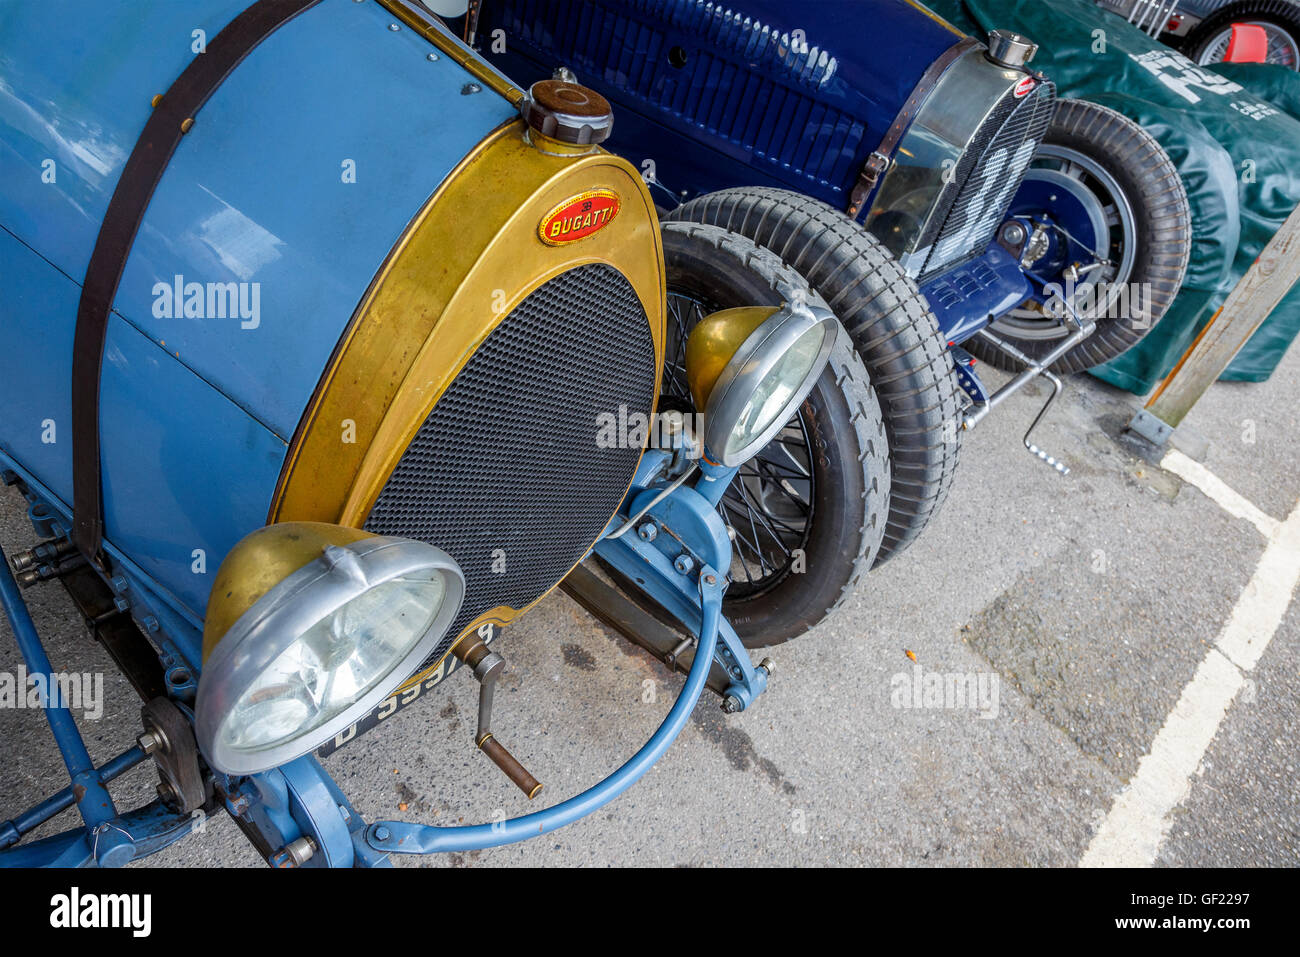 Pre-war Bugatti in the paddock at the 2015 Goodwood Revival, Sussex, UK. - Stock Image